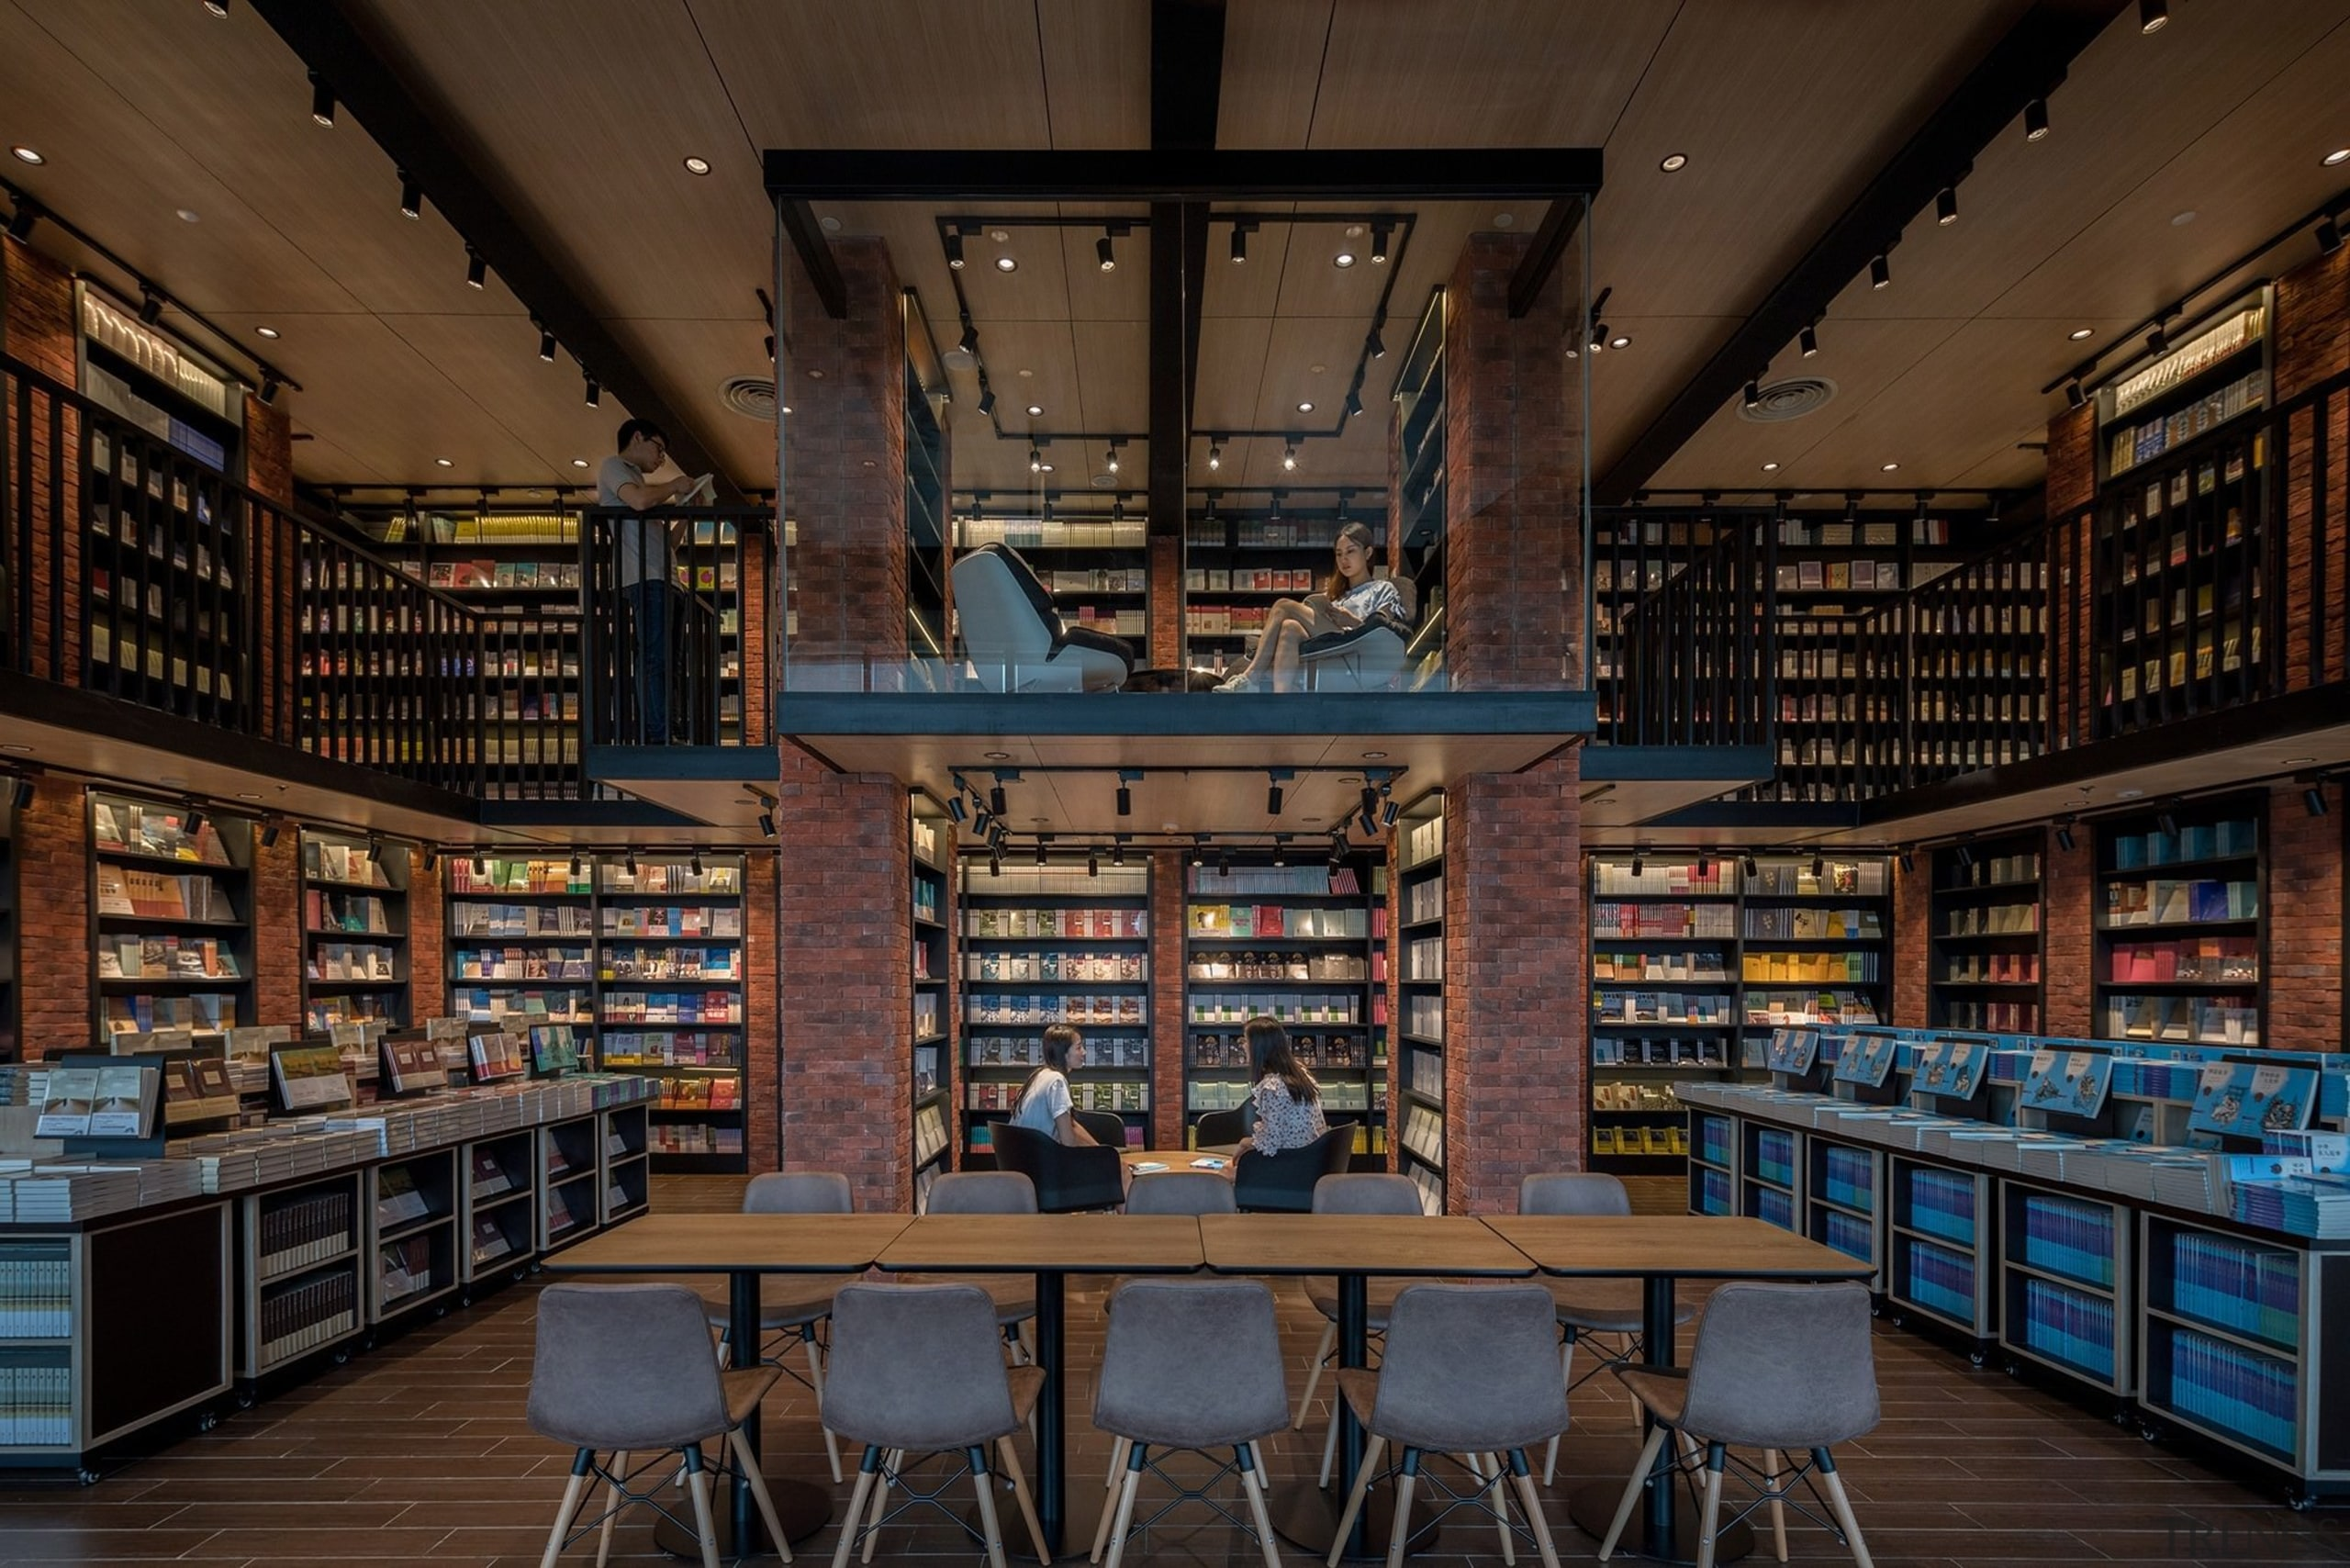 Architect: X+LivingPhotography by Shao Feng building, institution, library, library science, public library, black